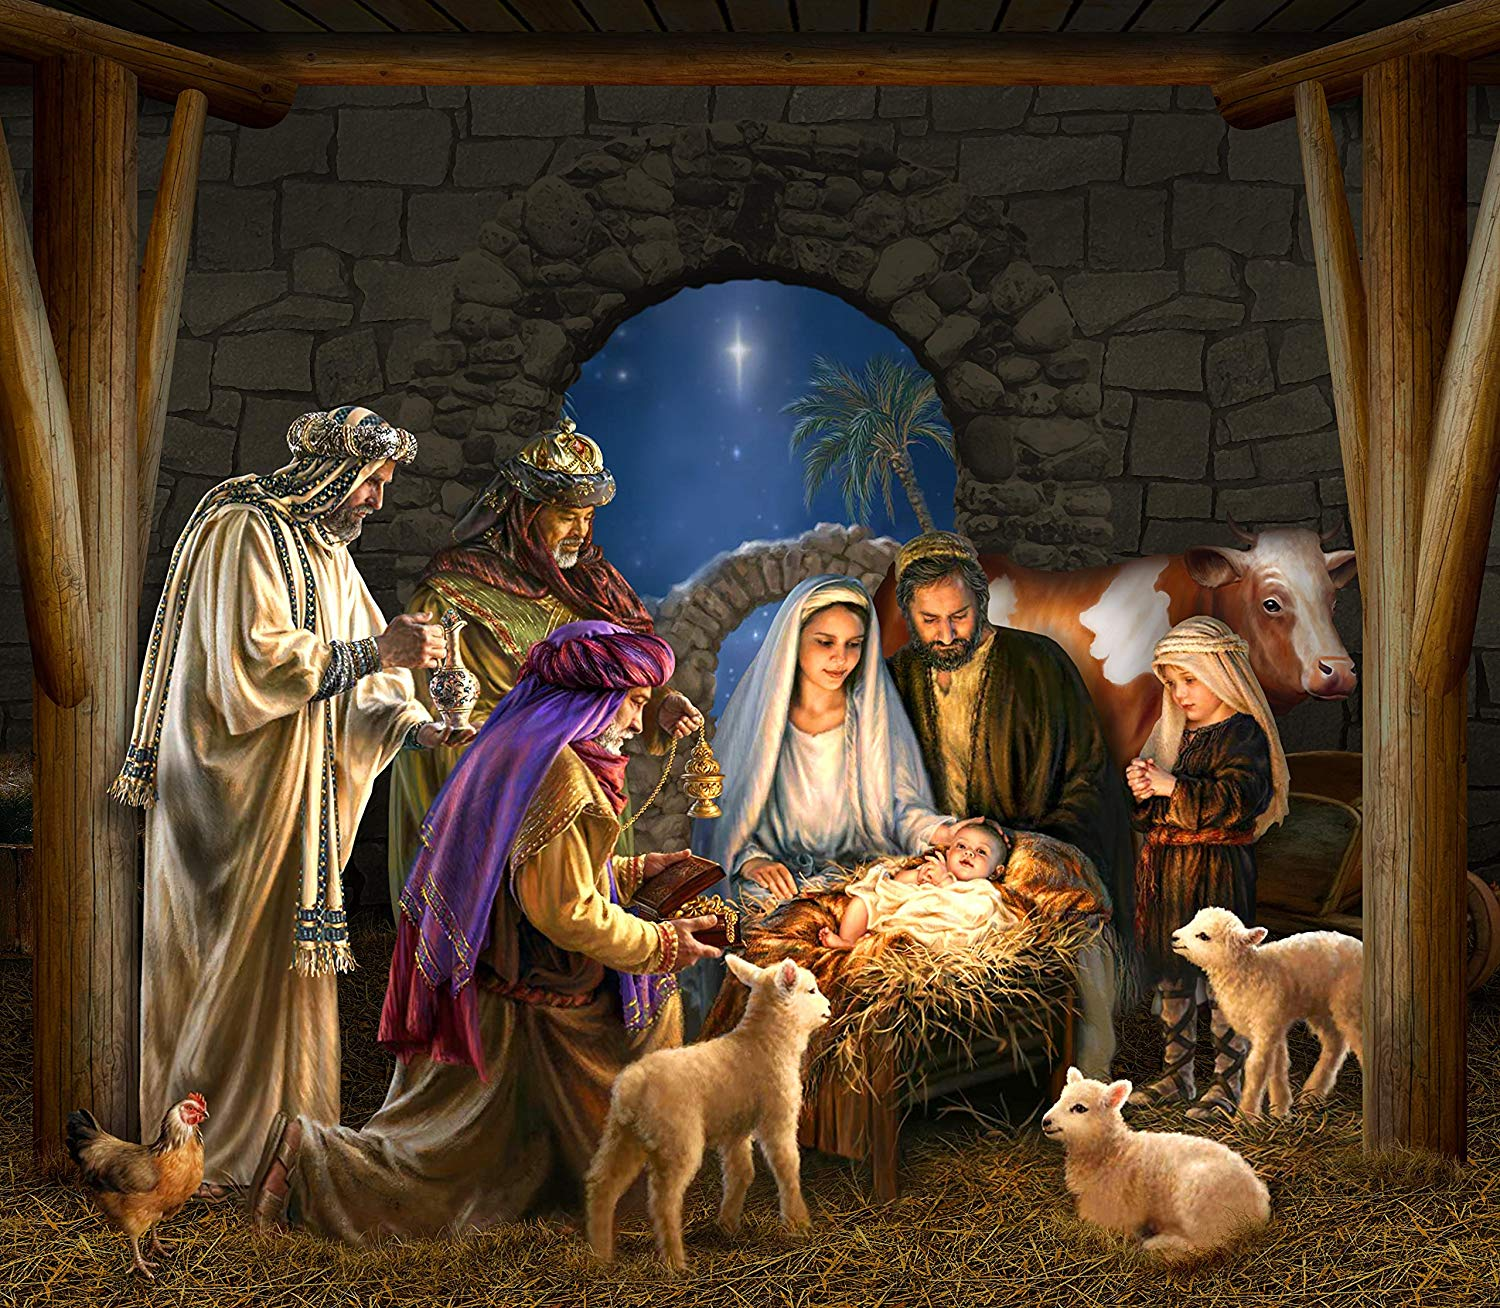 https://stbenedictlebanon.org/wp-content/uploads/2018/12/Nativity.jpg